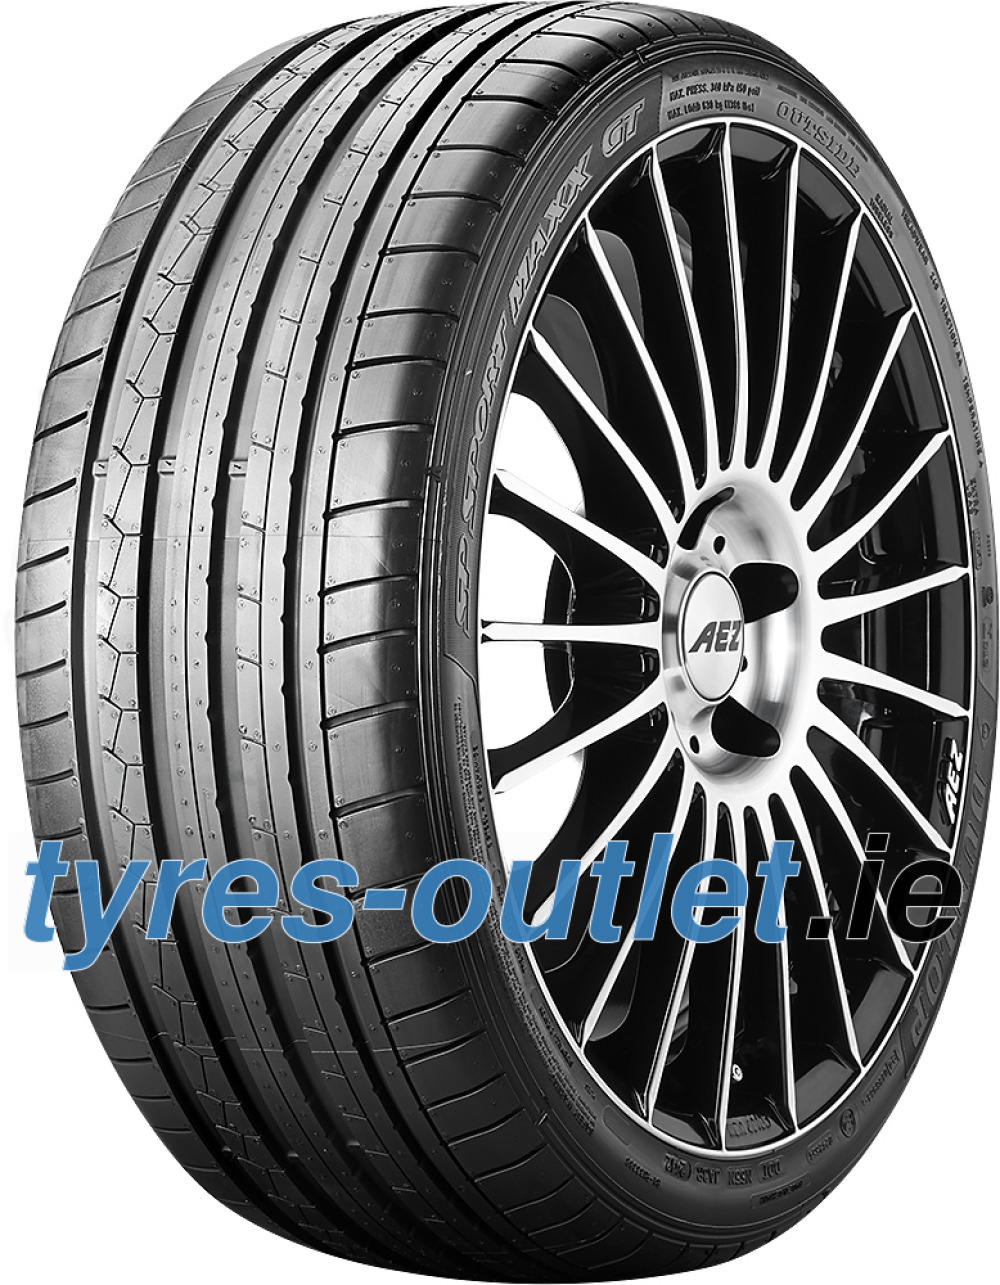 Dunlop SP Sport Maxx GT ( 265/30 ZR19 (93Y) XL with rim protection (MFS) )